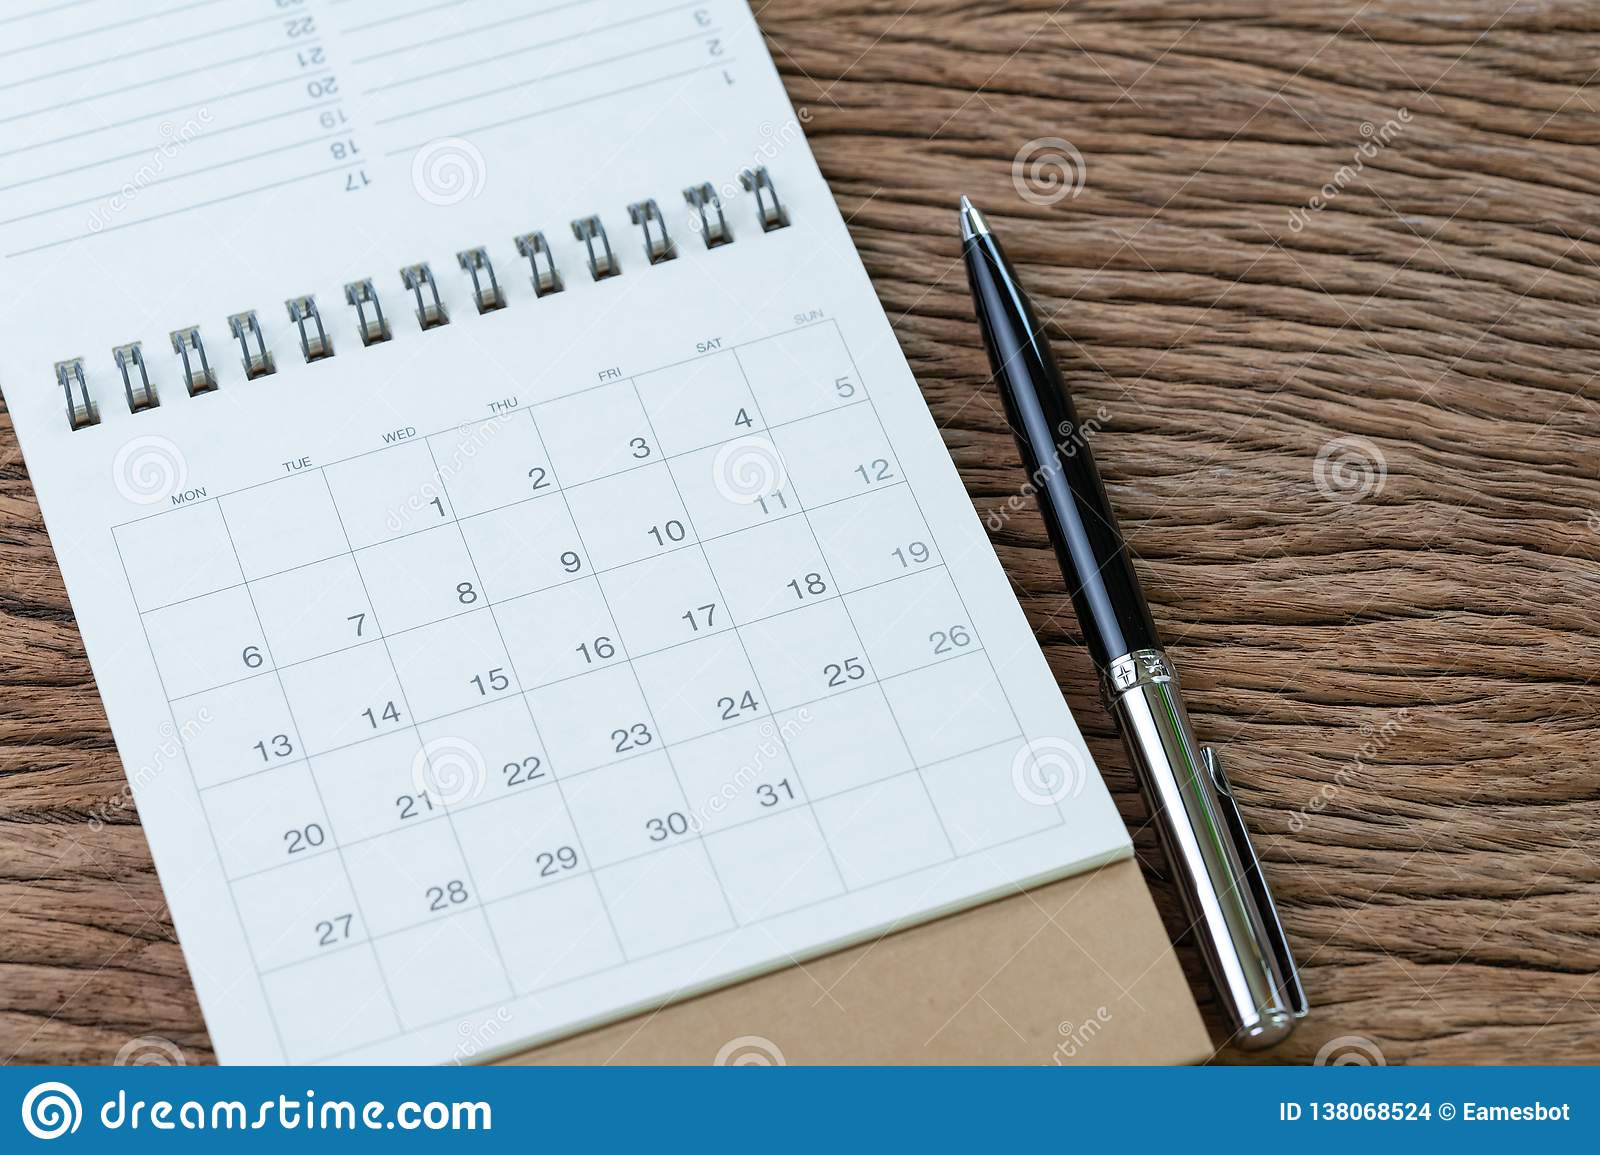 White clean calendar with pen on wooden table background using for business reminder, travel schedule or project planning concept